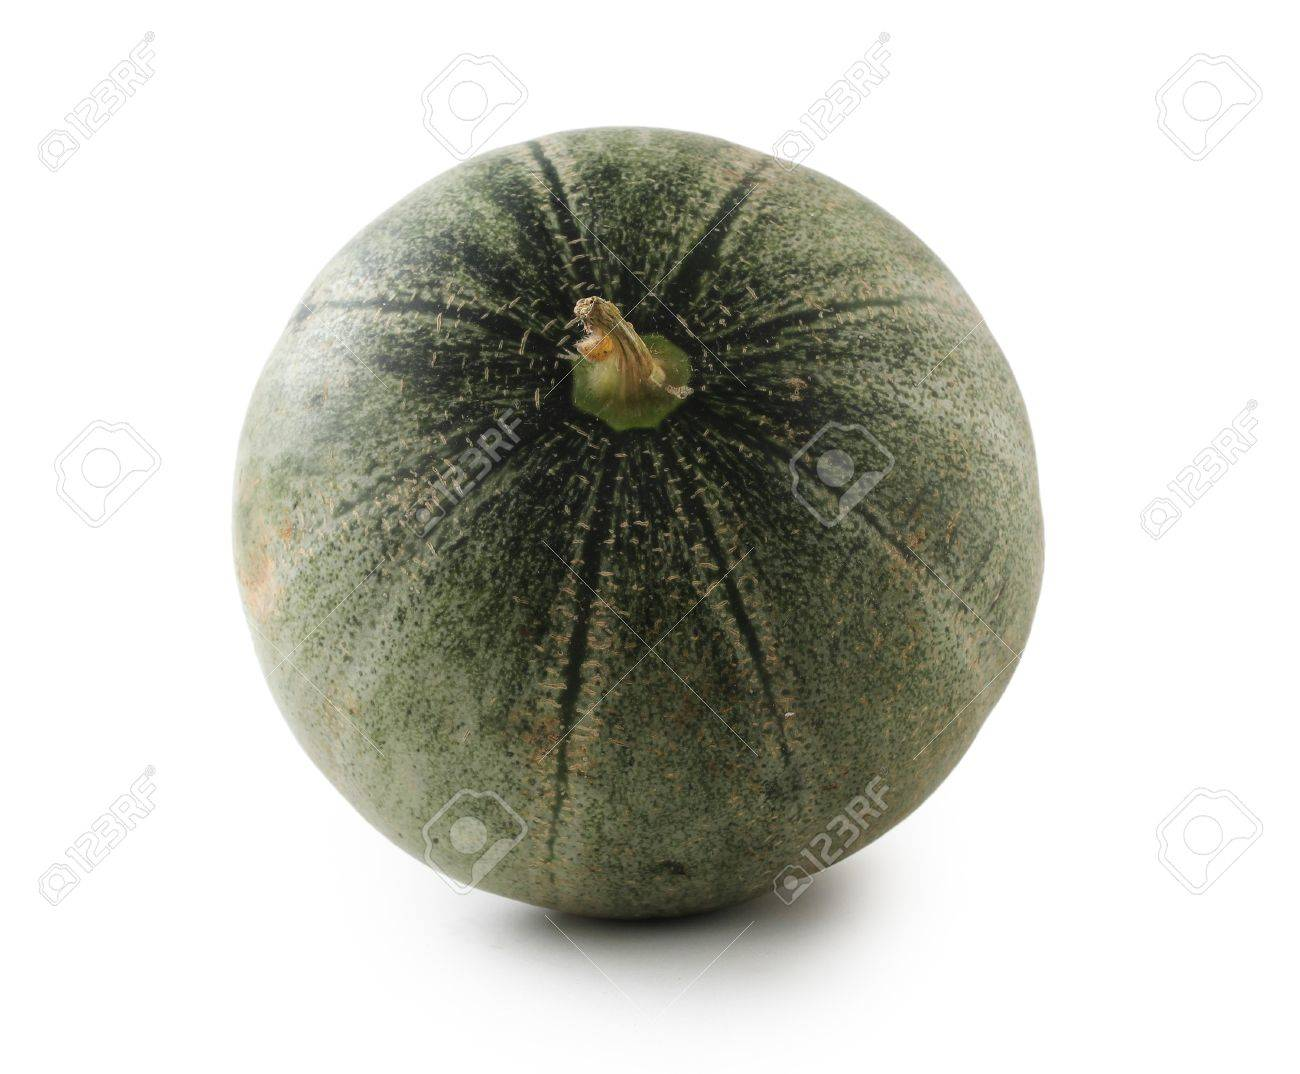 Closeup photo of juicy green melon on white background Stock Photo - 16894841